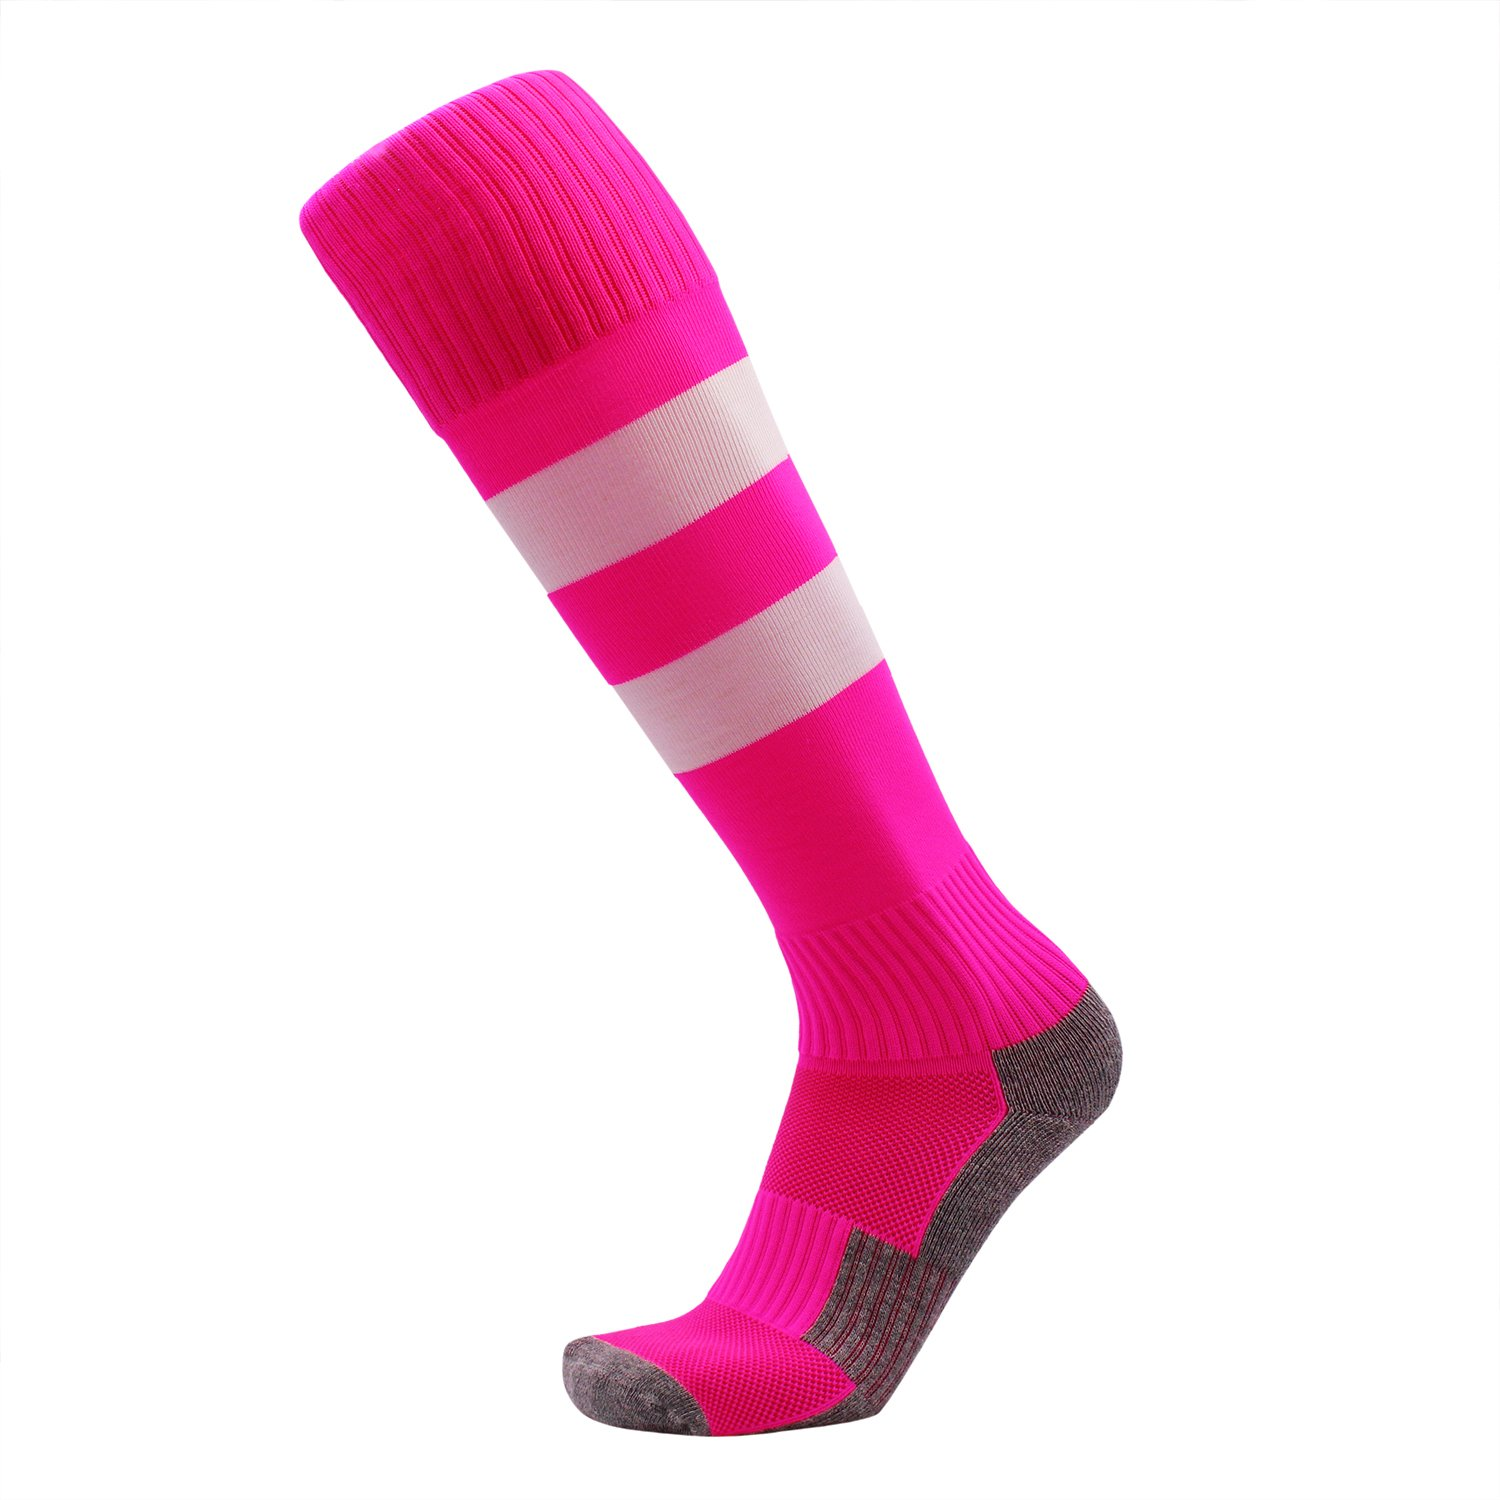 KALAKIDS Girls Soccer Socks 1 Pack Long Tube Cushioned Sports Socks Pink Stripe XS by KALAKIDS